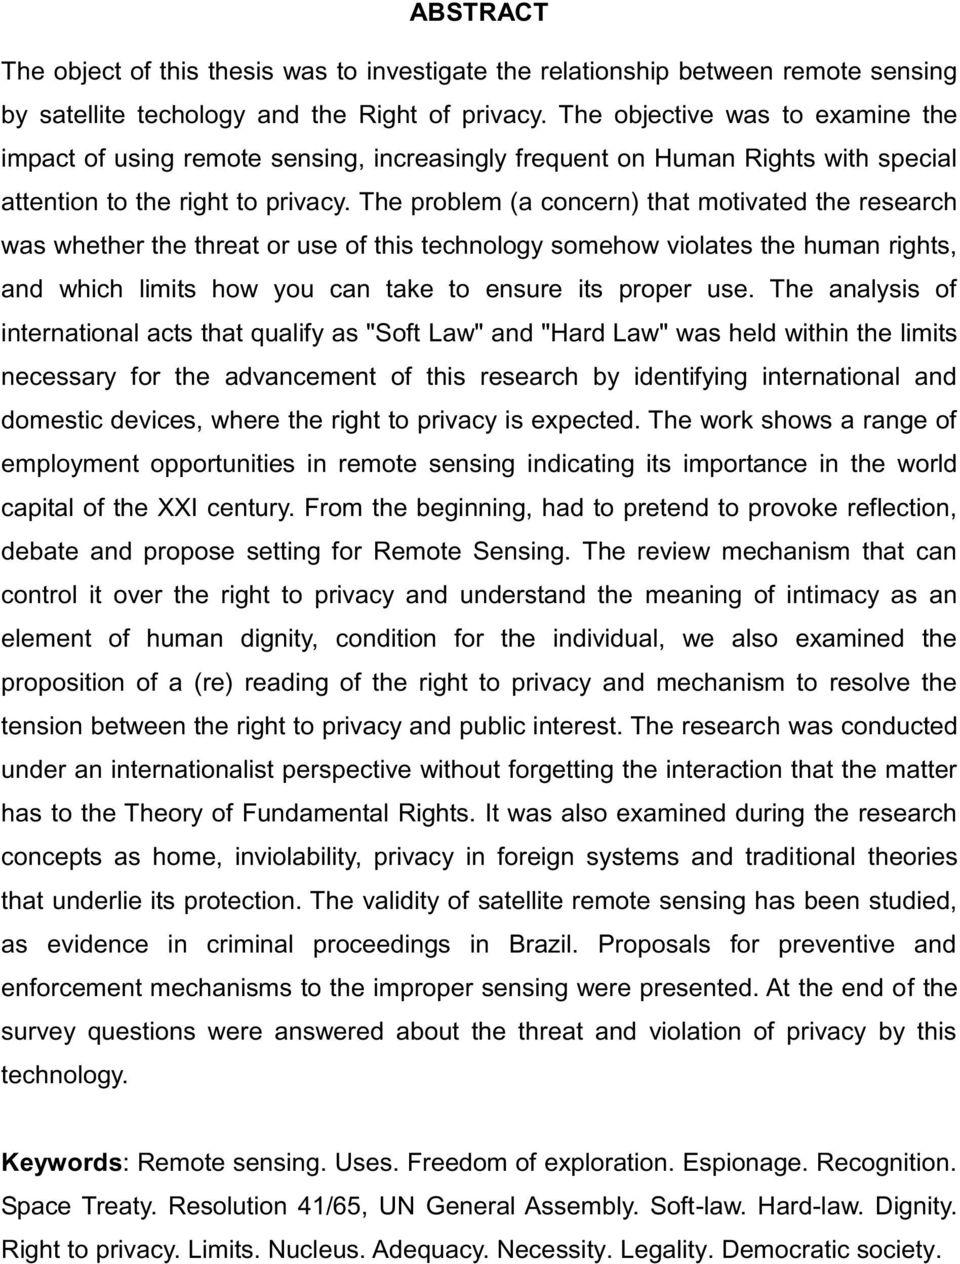 The problem (a concern) that motivated the research was whether the threat or use of this technology somehow violates the human rights, and which limits how you can take to ensure its proper use.